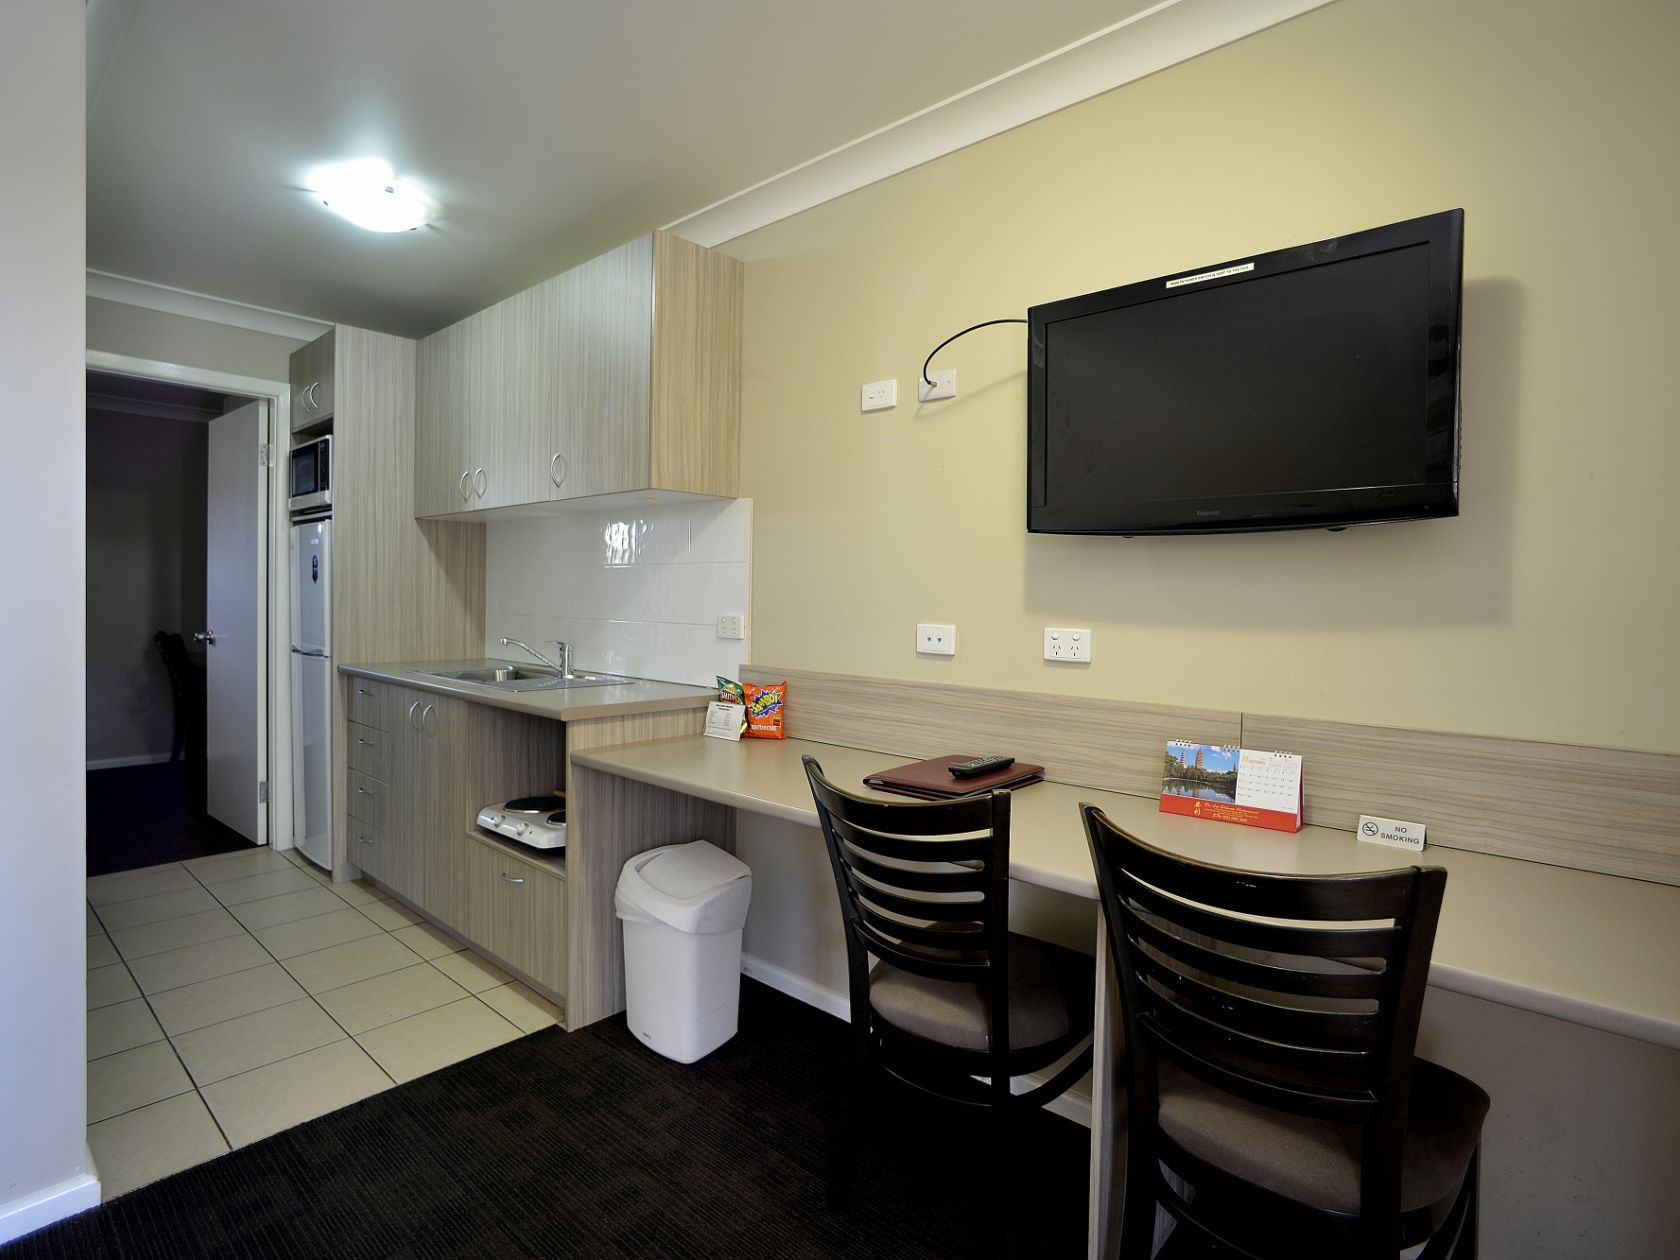 Country NSW Motel New 30 Lease, 24 Rooms Highway Frontage